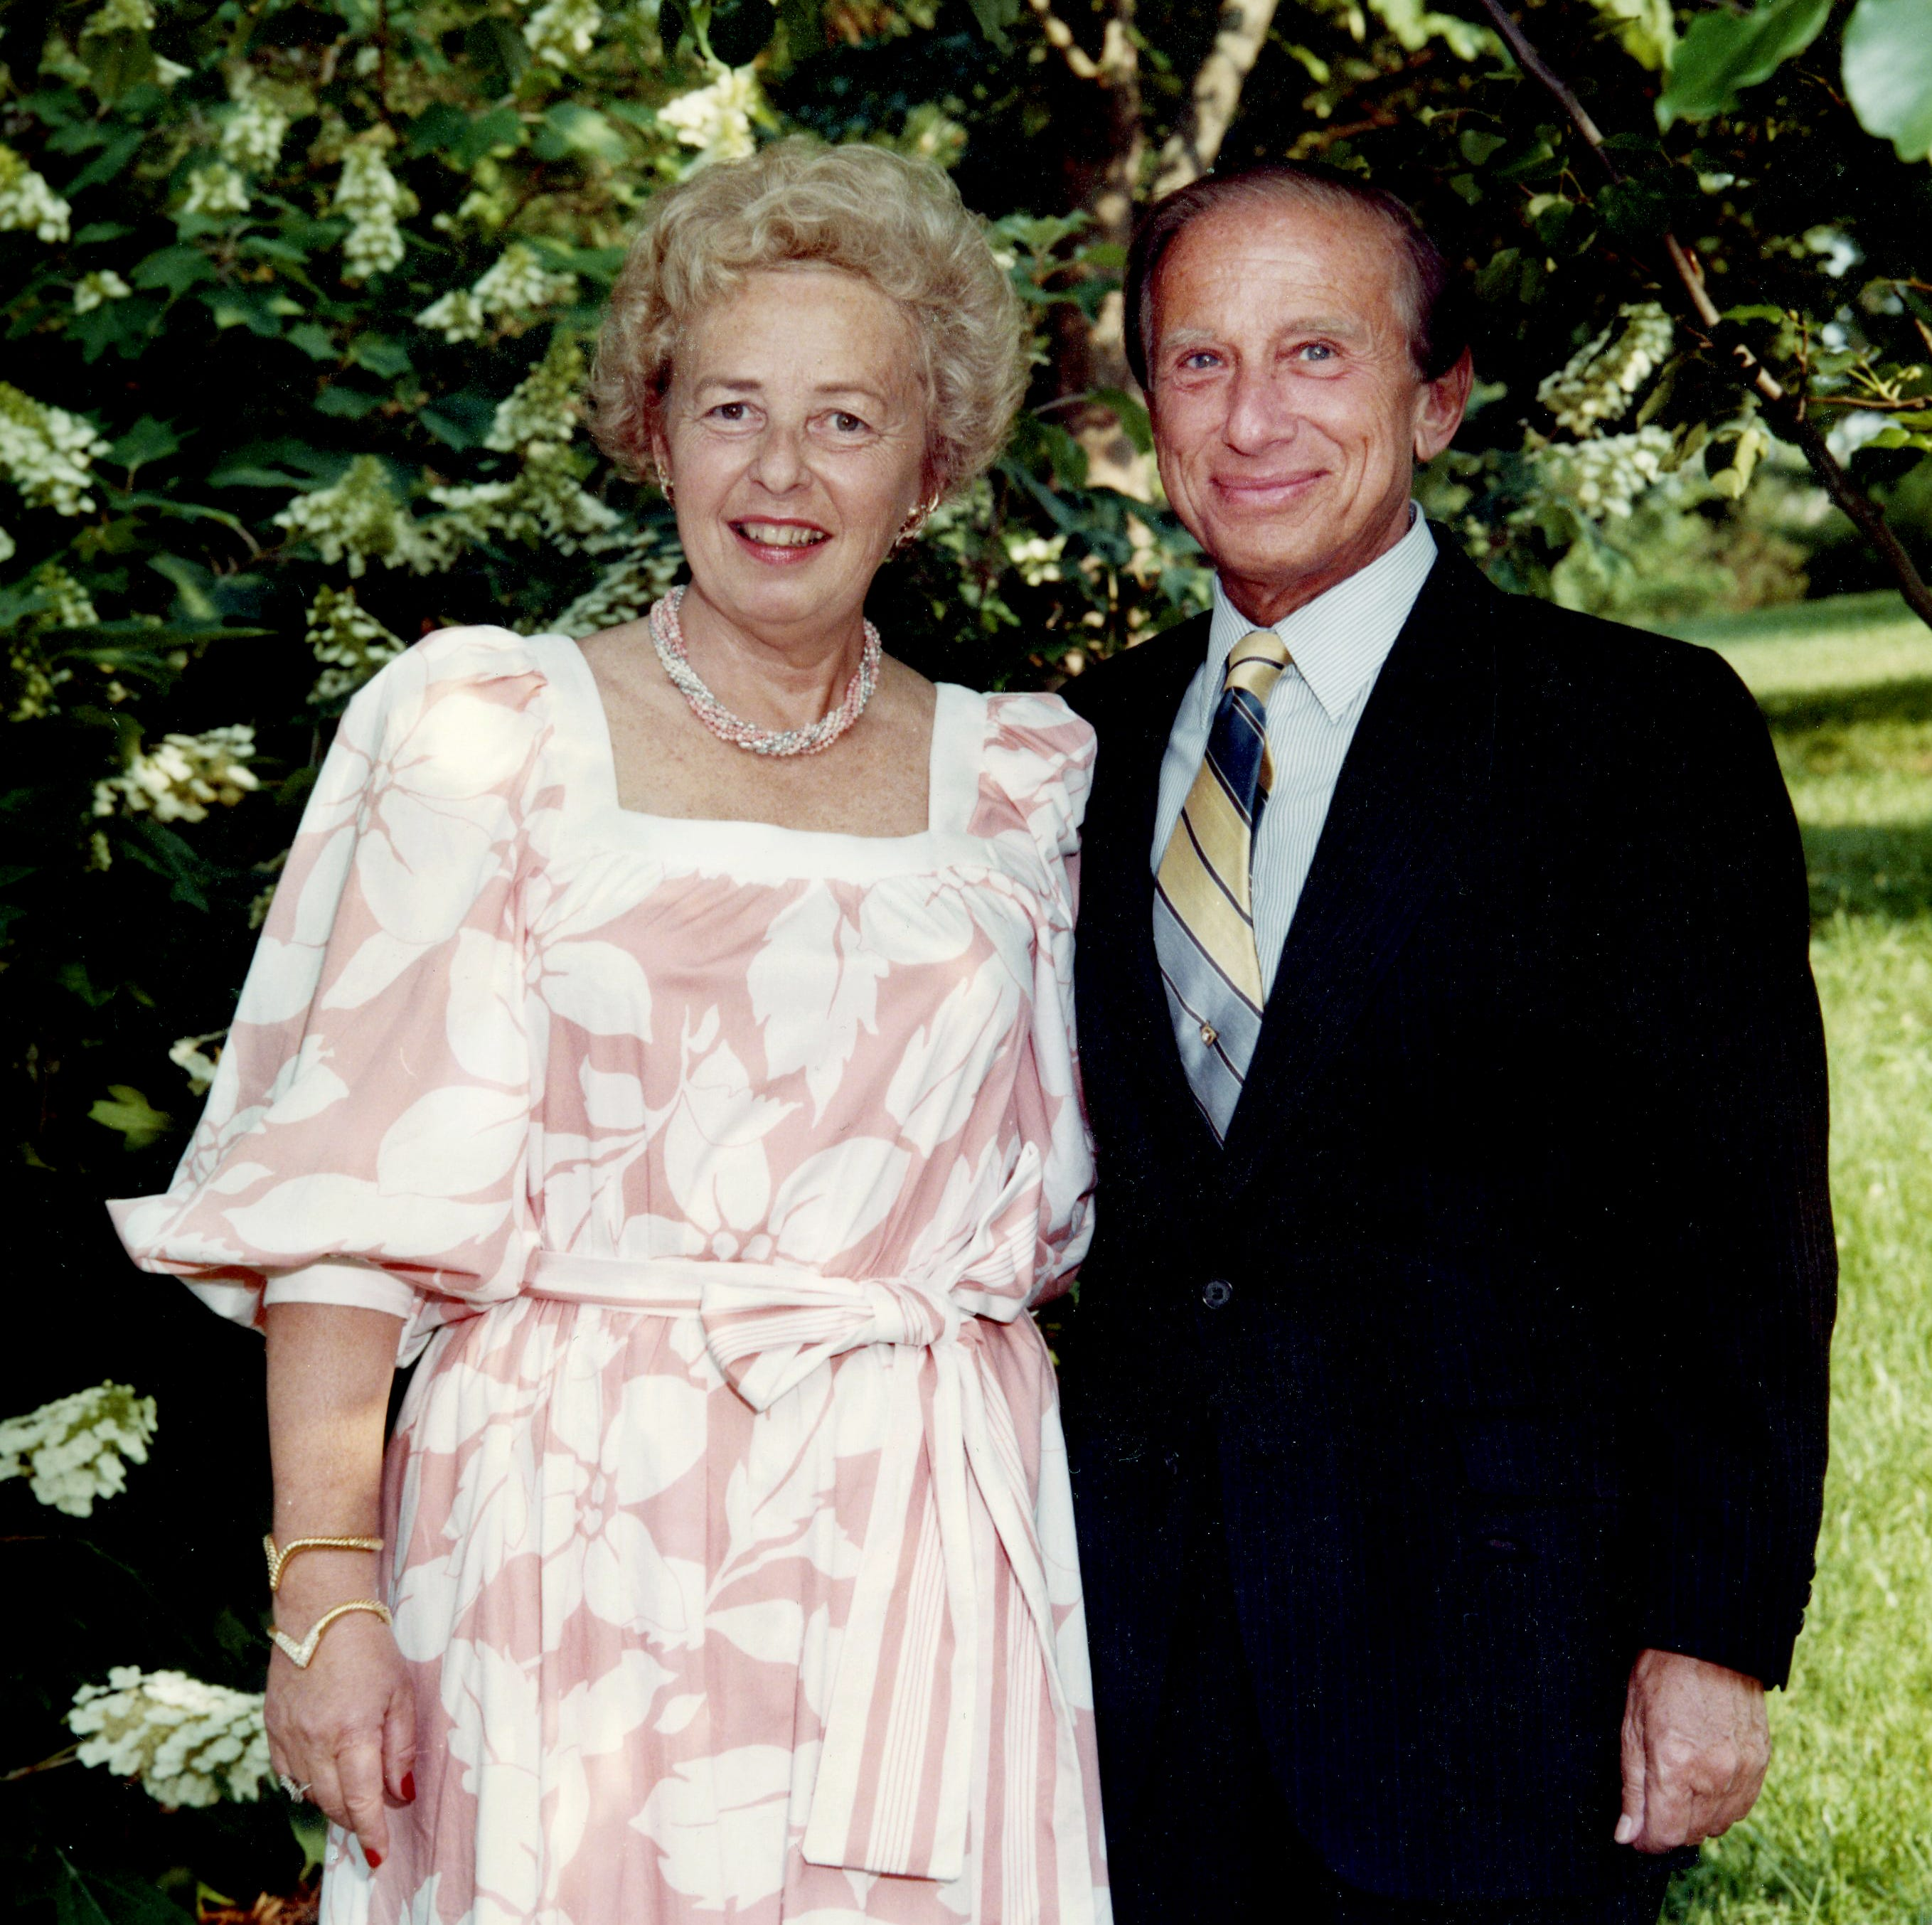 Doris Vise, wife of local business leader the late Harry Vise, dies at 90